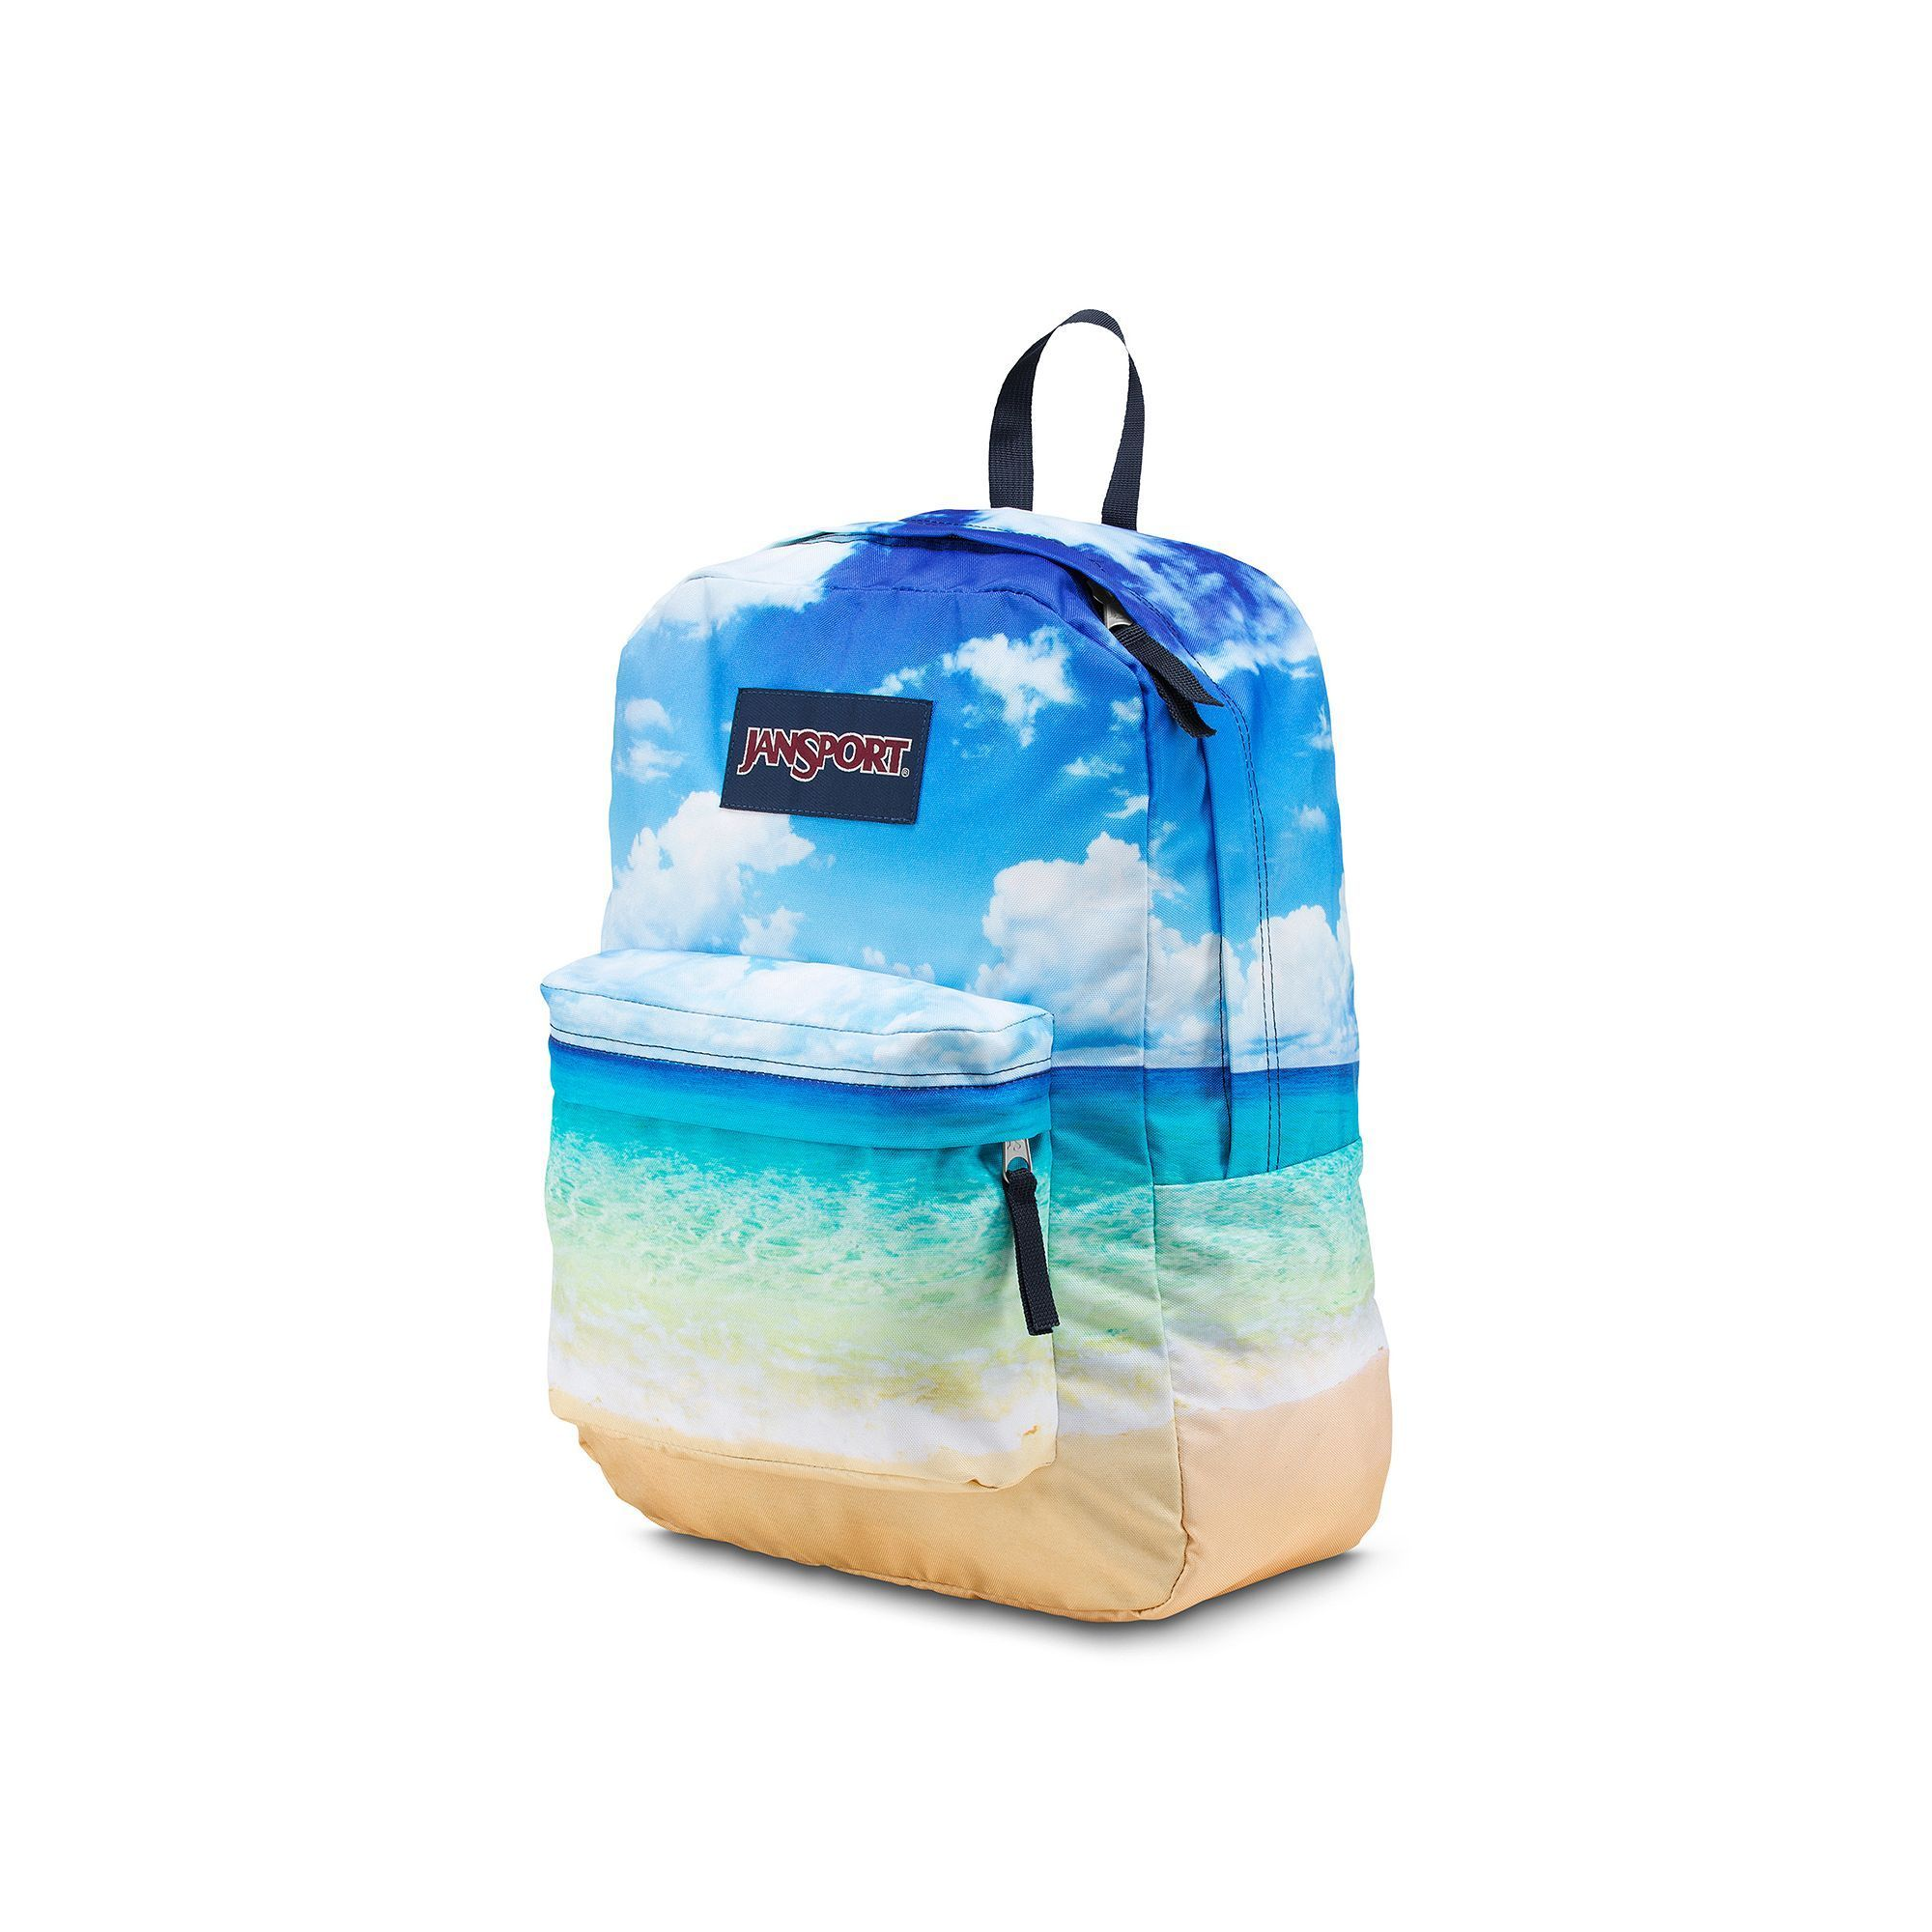 9077a7af282 JanSport High Stakes Backpack in 2019 | Products | Backpacks ...